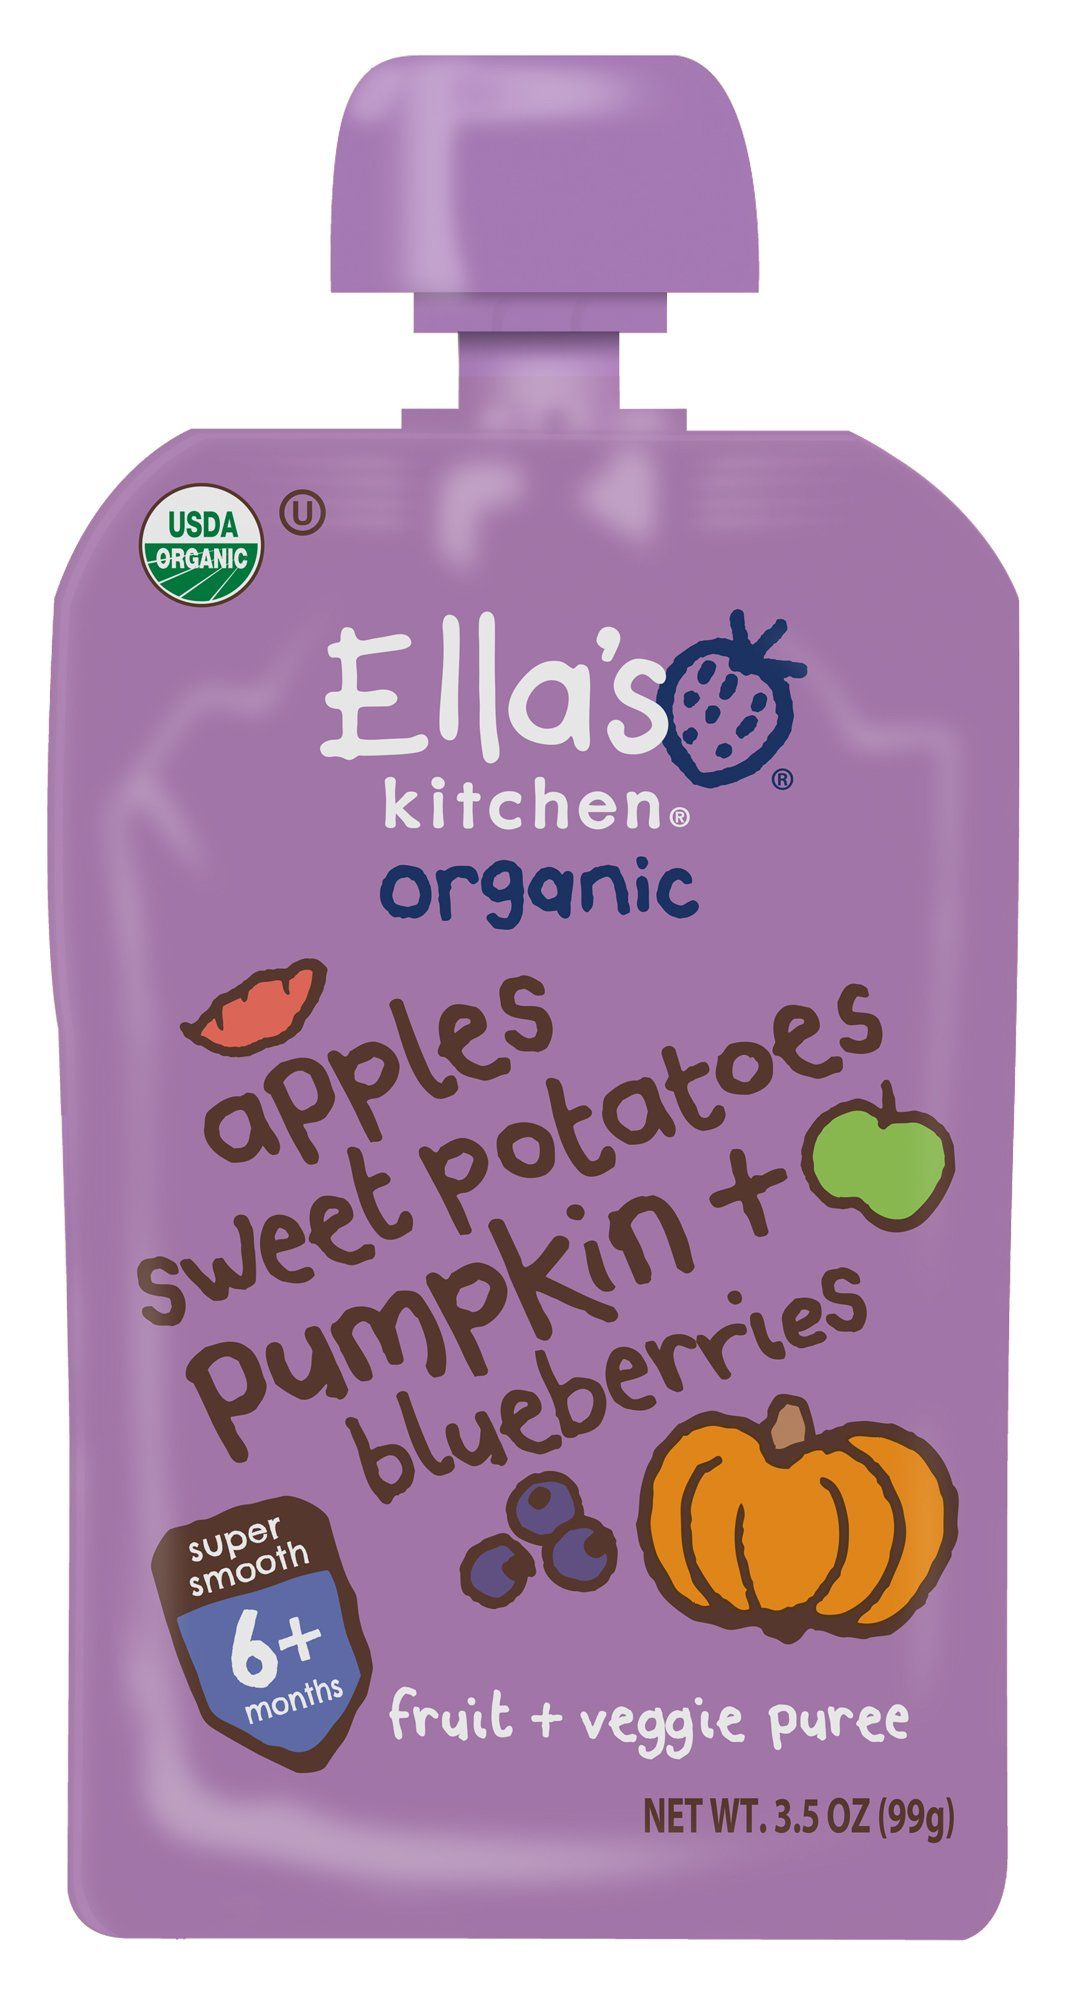 Ella's Kitchen Organic Stage 2, Apples Sweet Potatoes Pumpkin + Blueberries, 3.5 Ounce (Pack of 6)